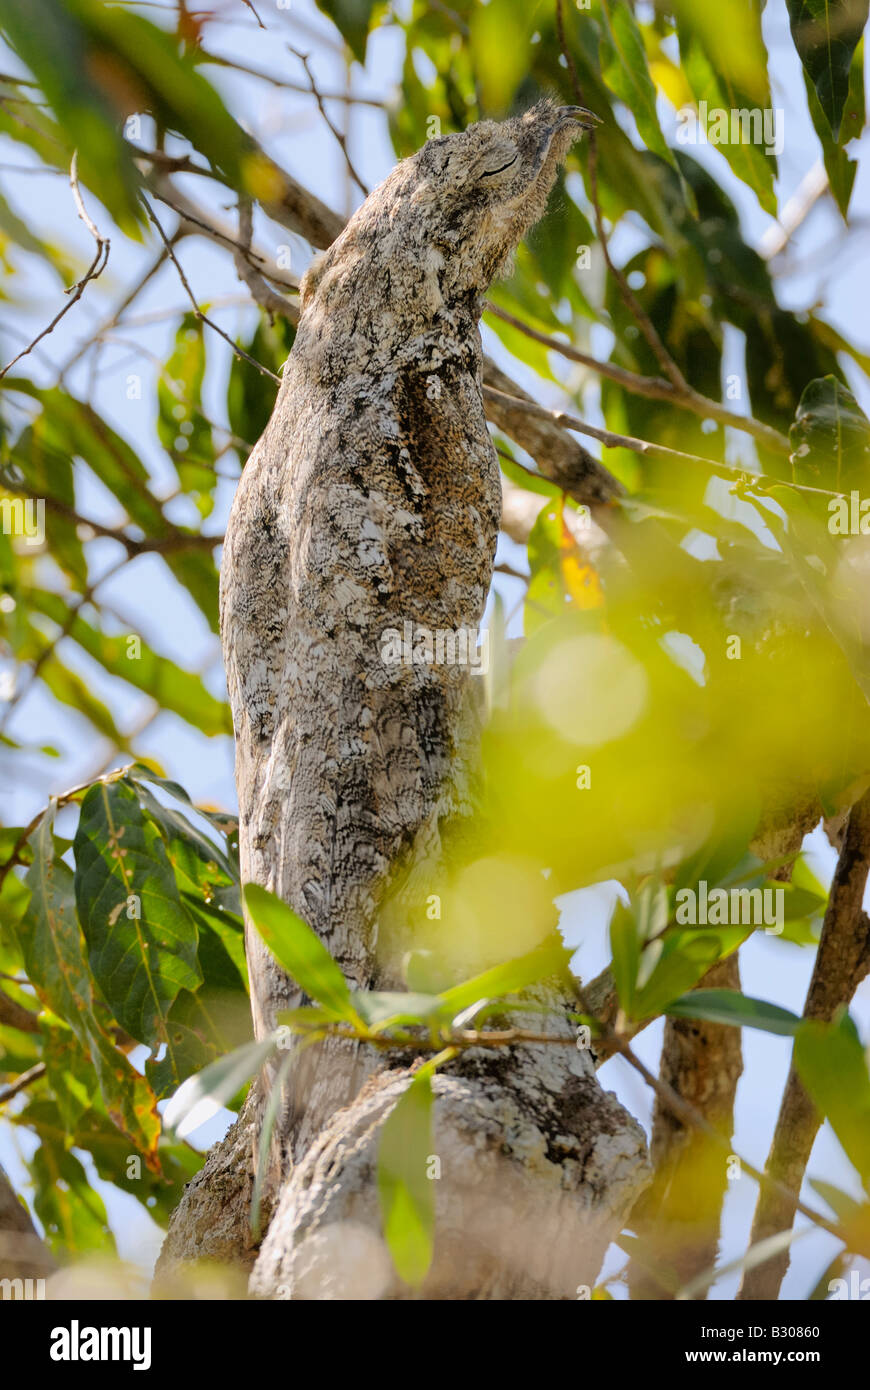 giant or great Potoo, Nyctibius grandis, sitting in a tree, LLANOS, Venezuela, South America - Stock Image